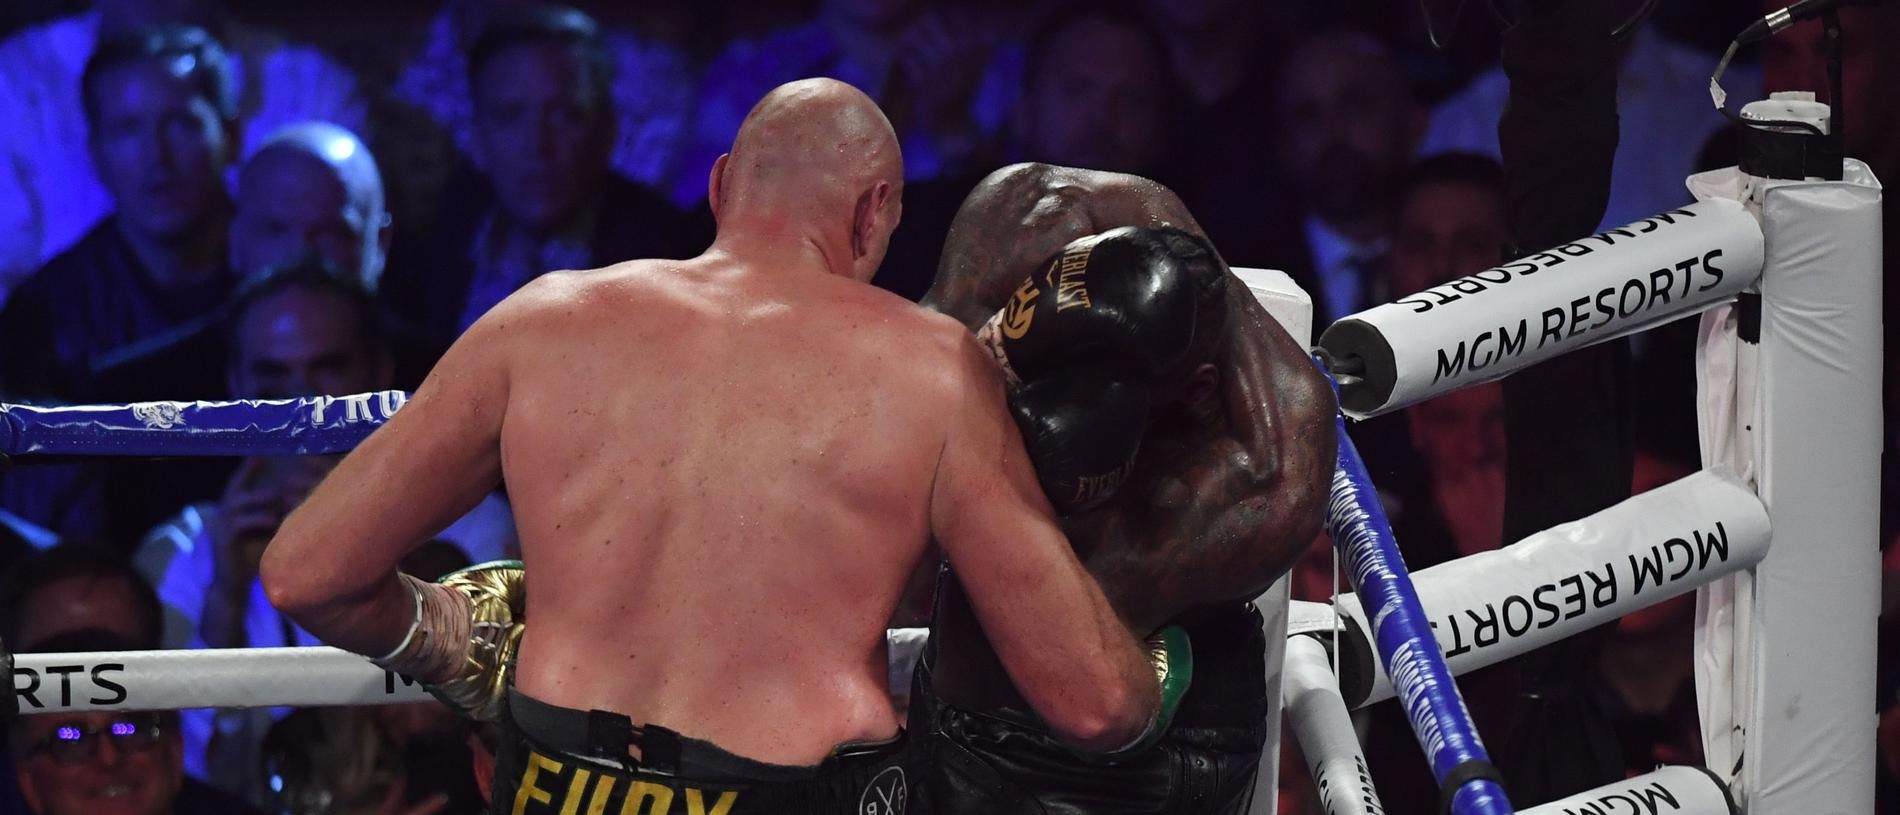 The towel (foreground) is thrown in by Wilder's trainer as British boxer Tyson Fury (L) defeats US boxer Deontay Wilder in the seventh round during their World Boxing Council (WBC) Heavyweight Championship Title boxing match at the MGM Grand Garden Arena in Las Vegas on February 22, 2020. (Photo by Mark RALSTON / AFP)